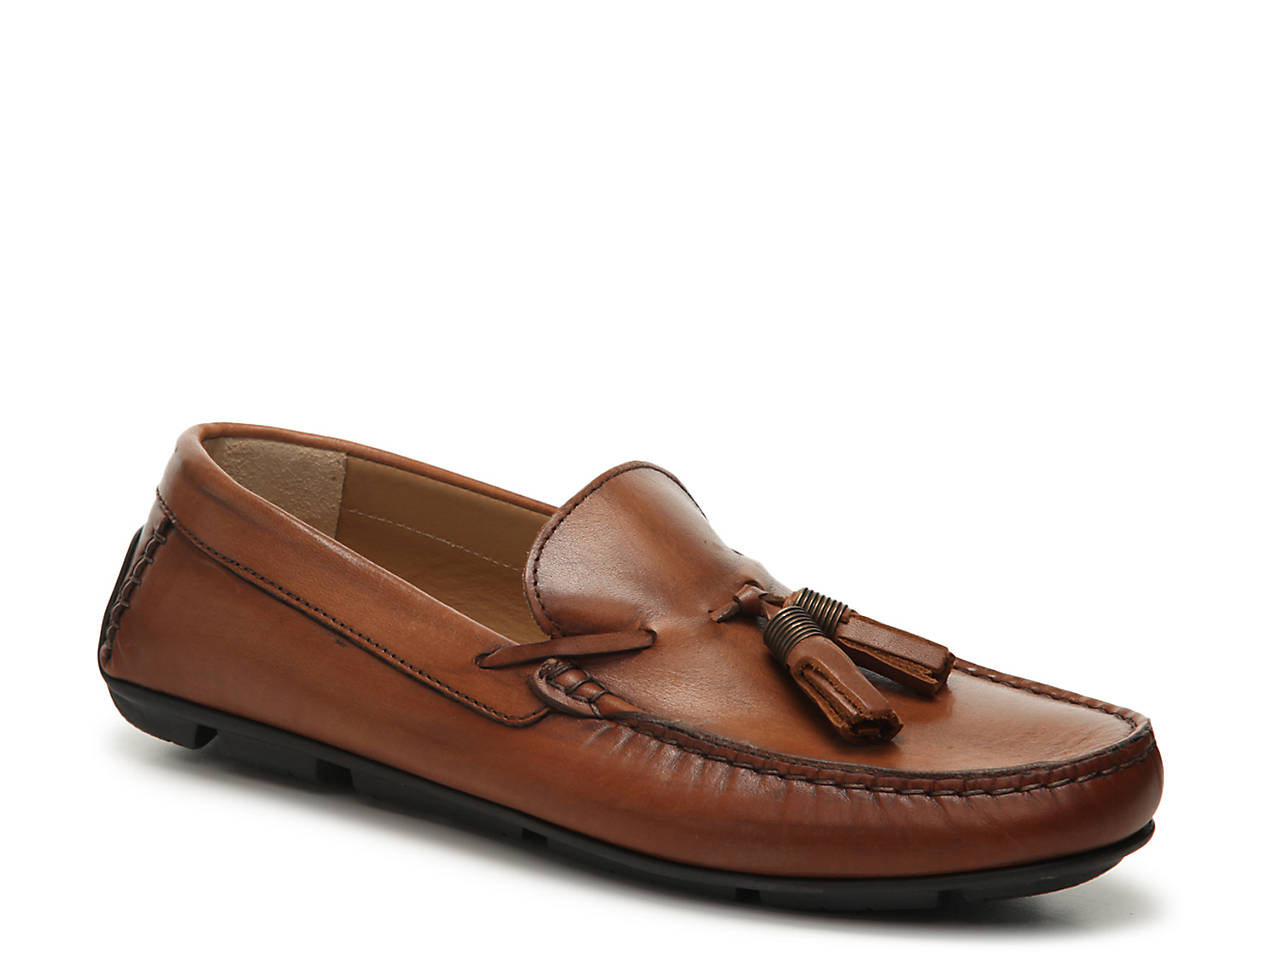 797714a1bce Kenneth Cole New York Randall Driving Loafer Men s Shoes